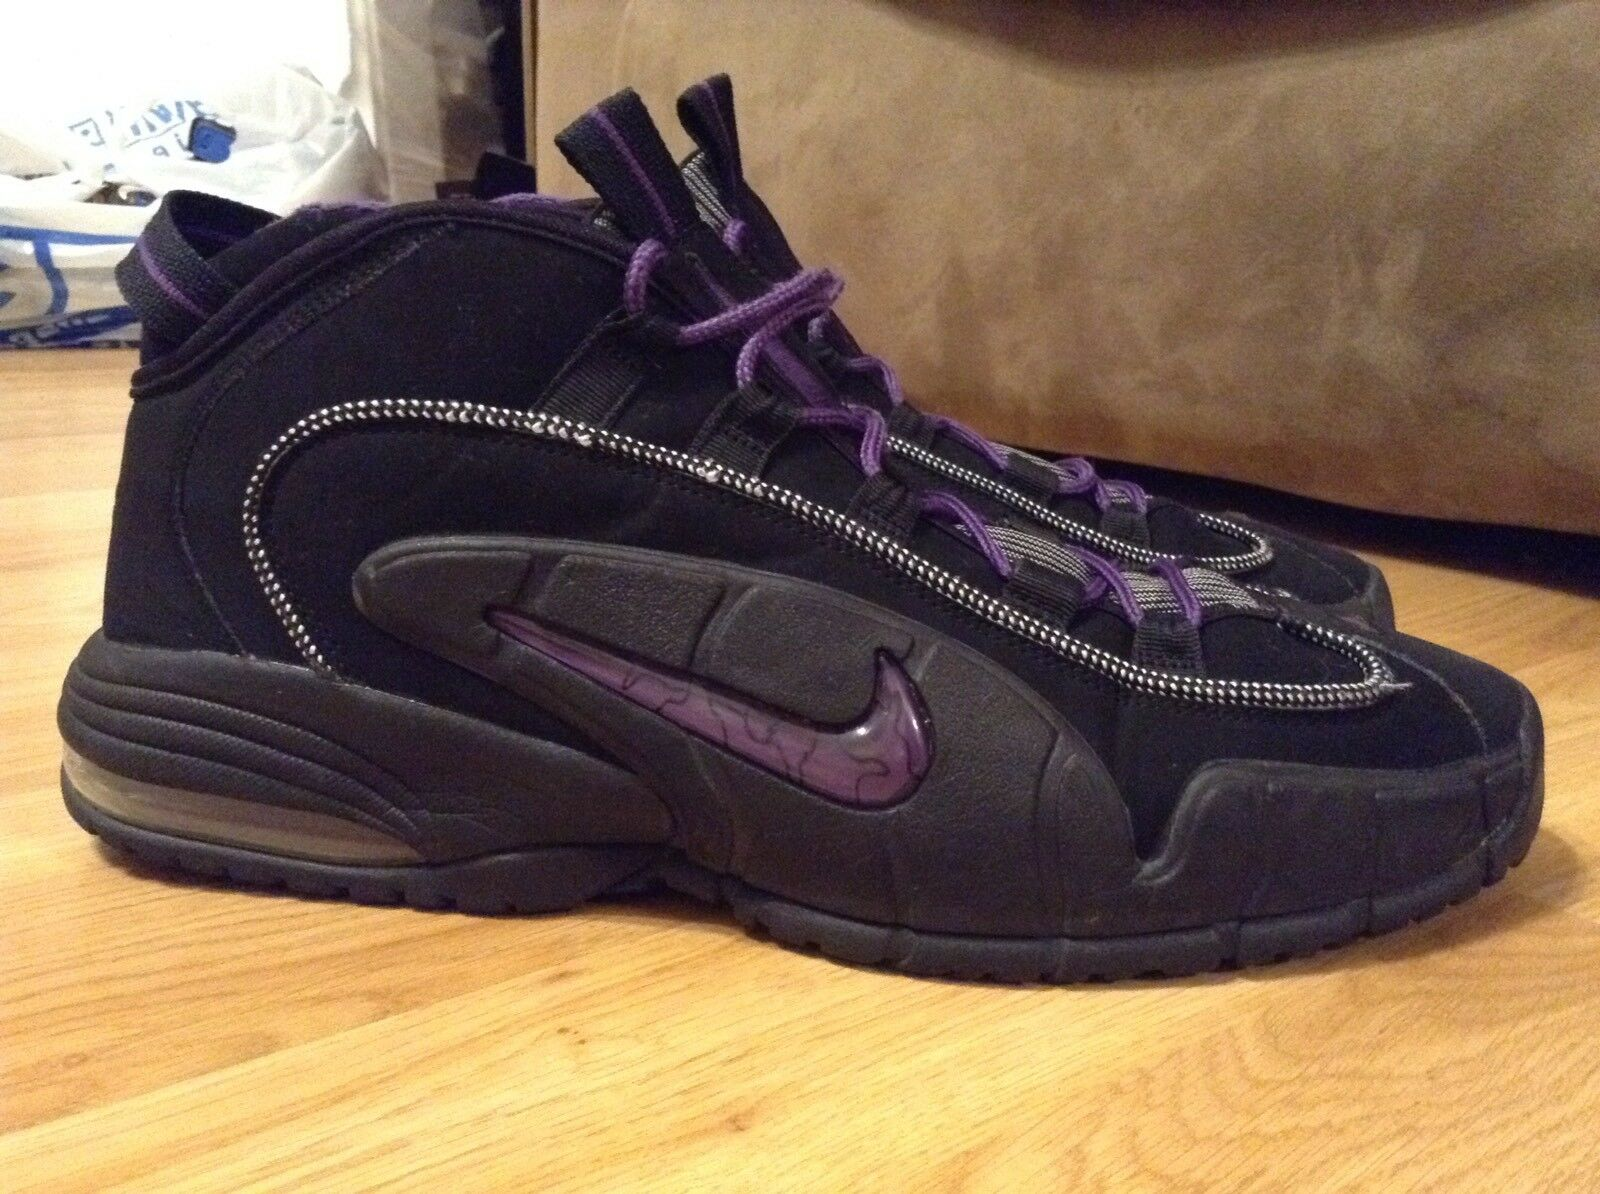 competitive price 7dd8c 5c7e7 Mens Nike Air Max Penny Penny Penny 1 Phoenix Suns Basketball Shoes  311089-002 Size